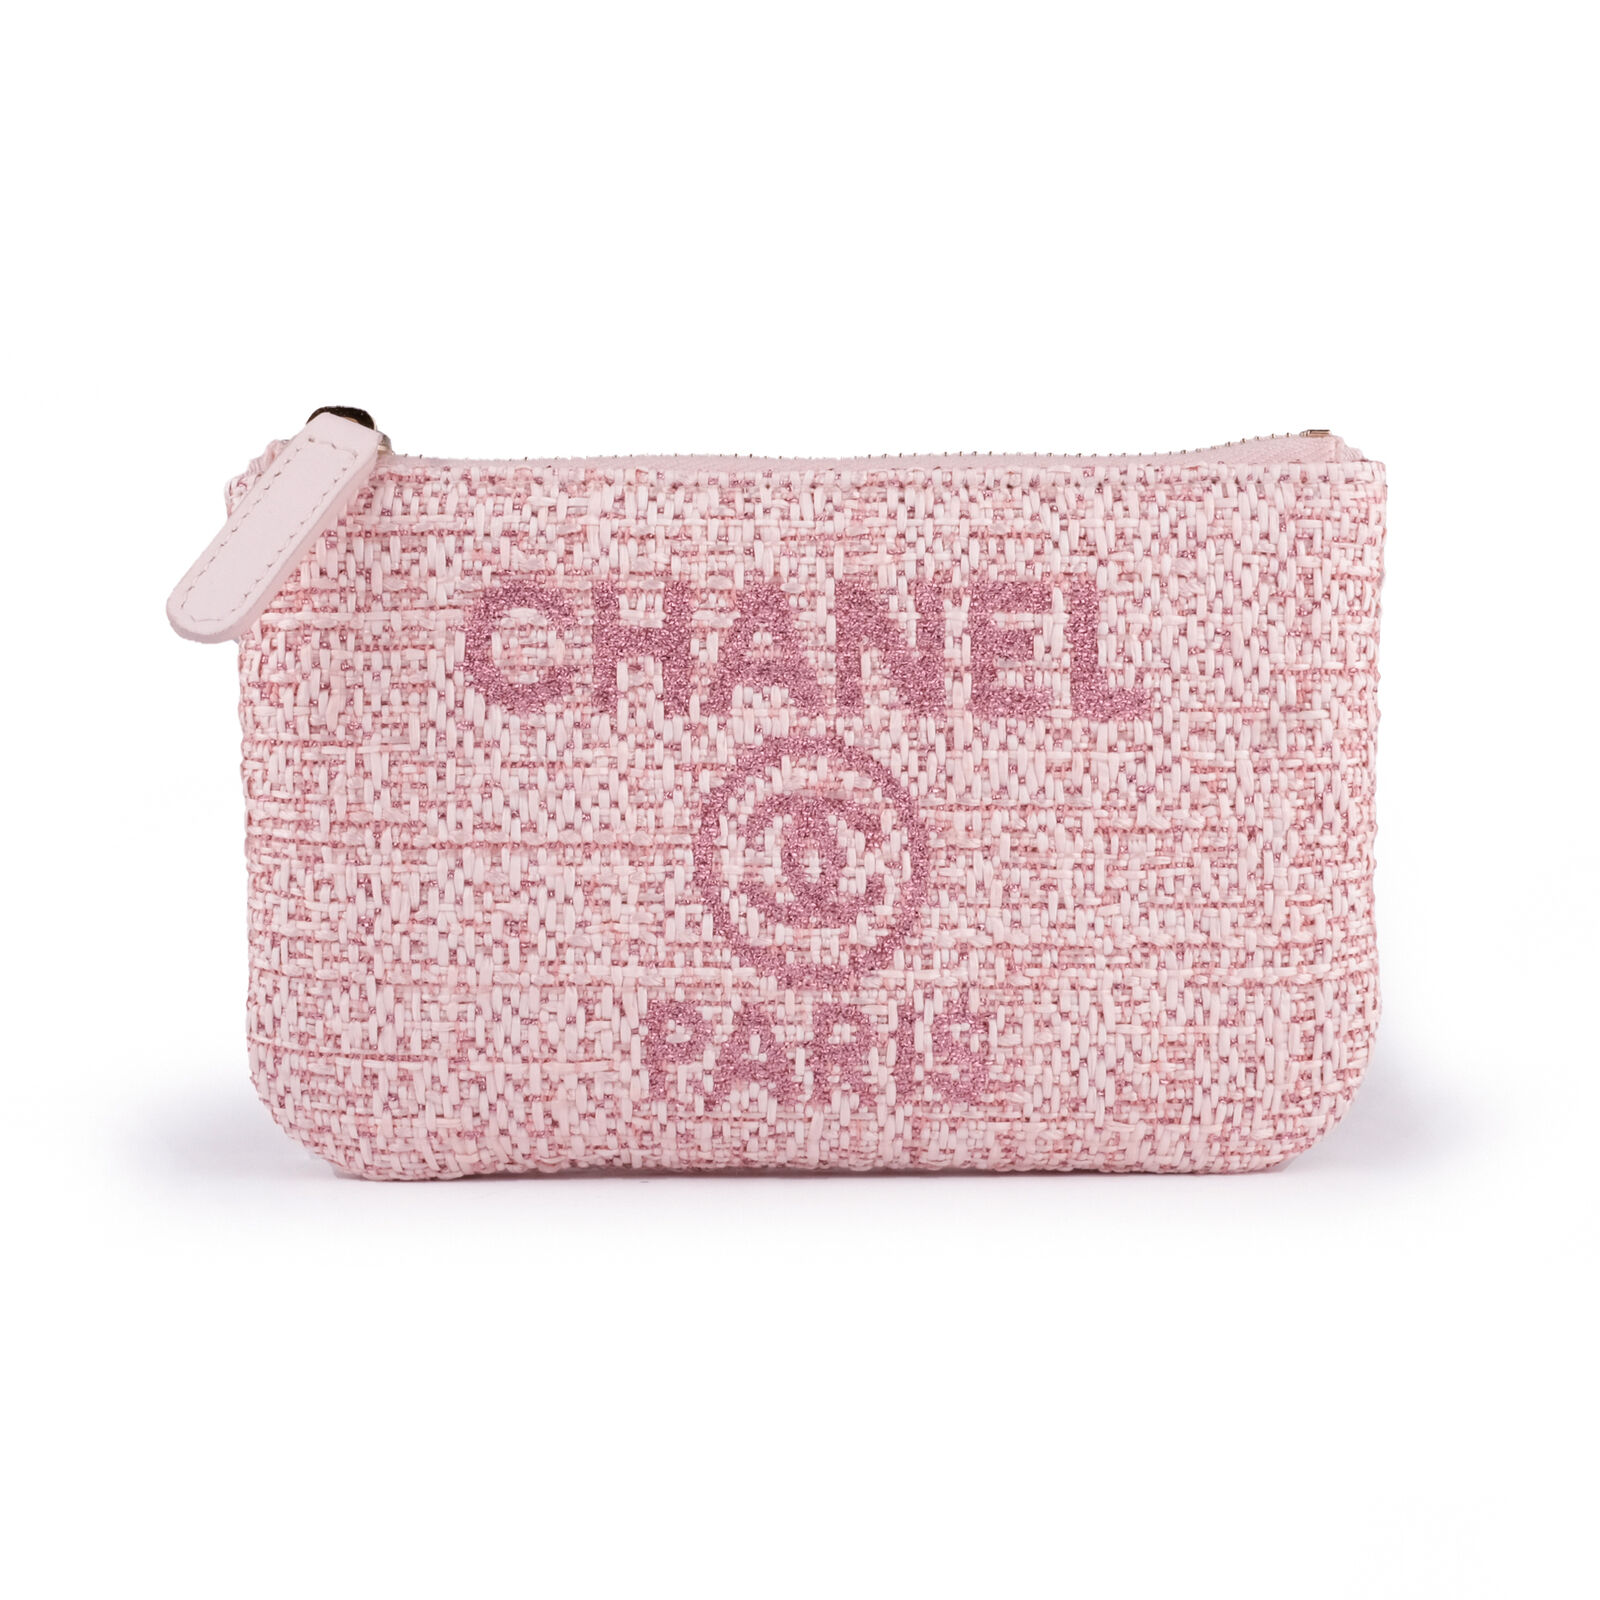 New 2019 Chanel Deauville Pink Tweed Pouch Zip Wallet Card Holder